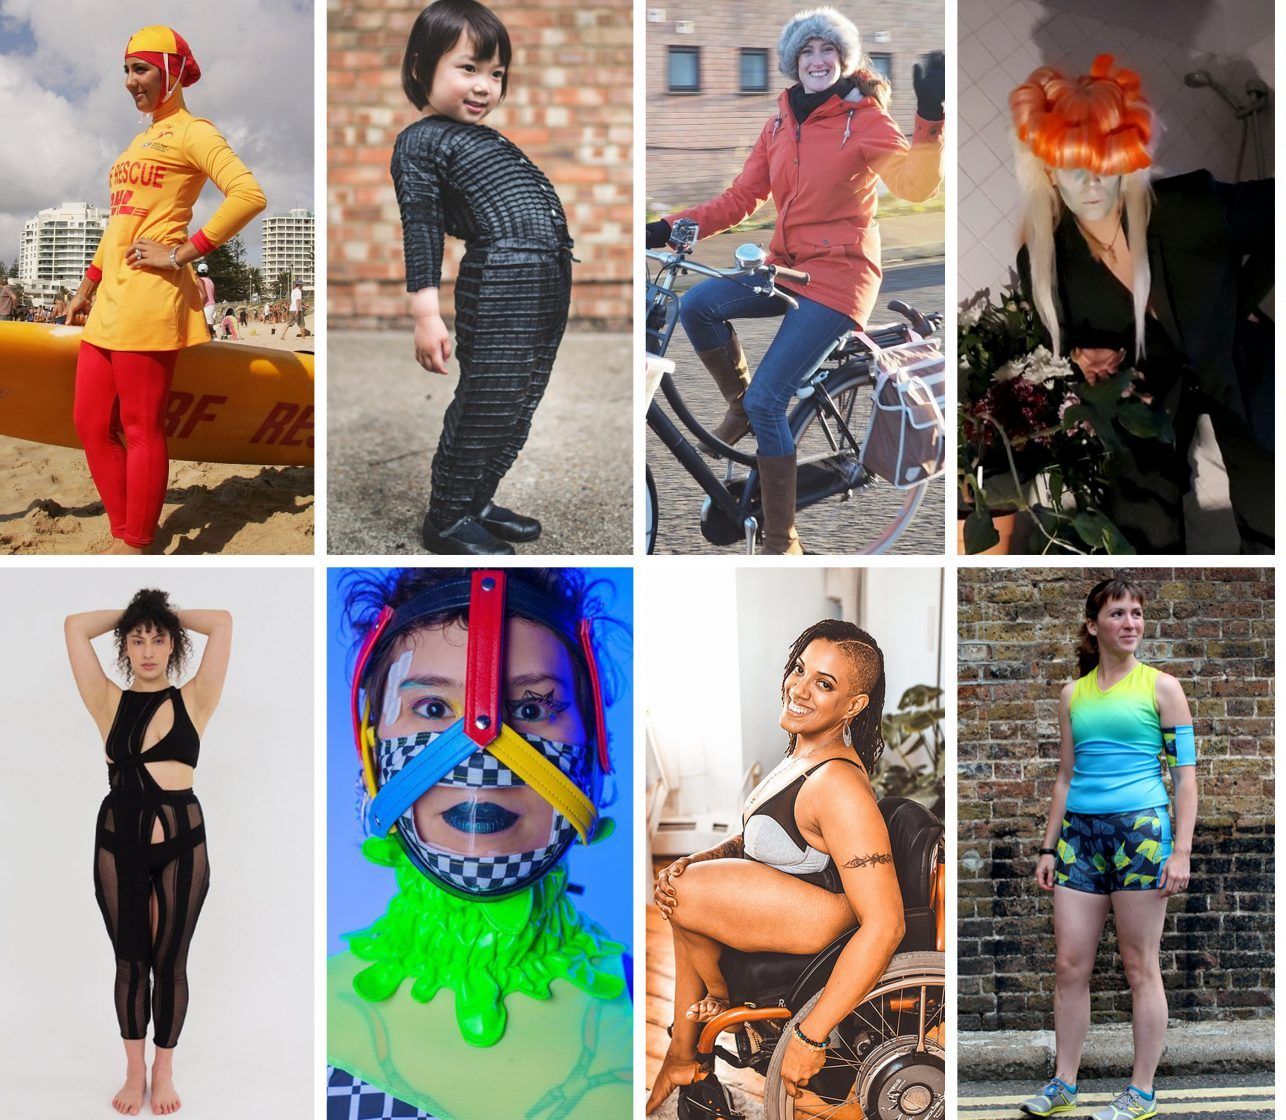 A grid of 8 portrait images featuring different Inventors and Models wearing a mixture of multi-coloured clothing and accessories.